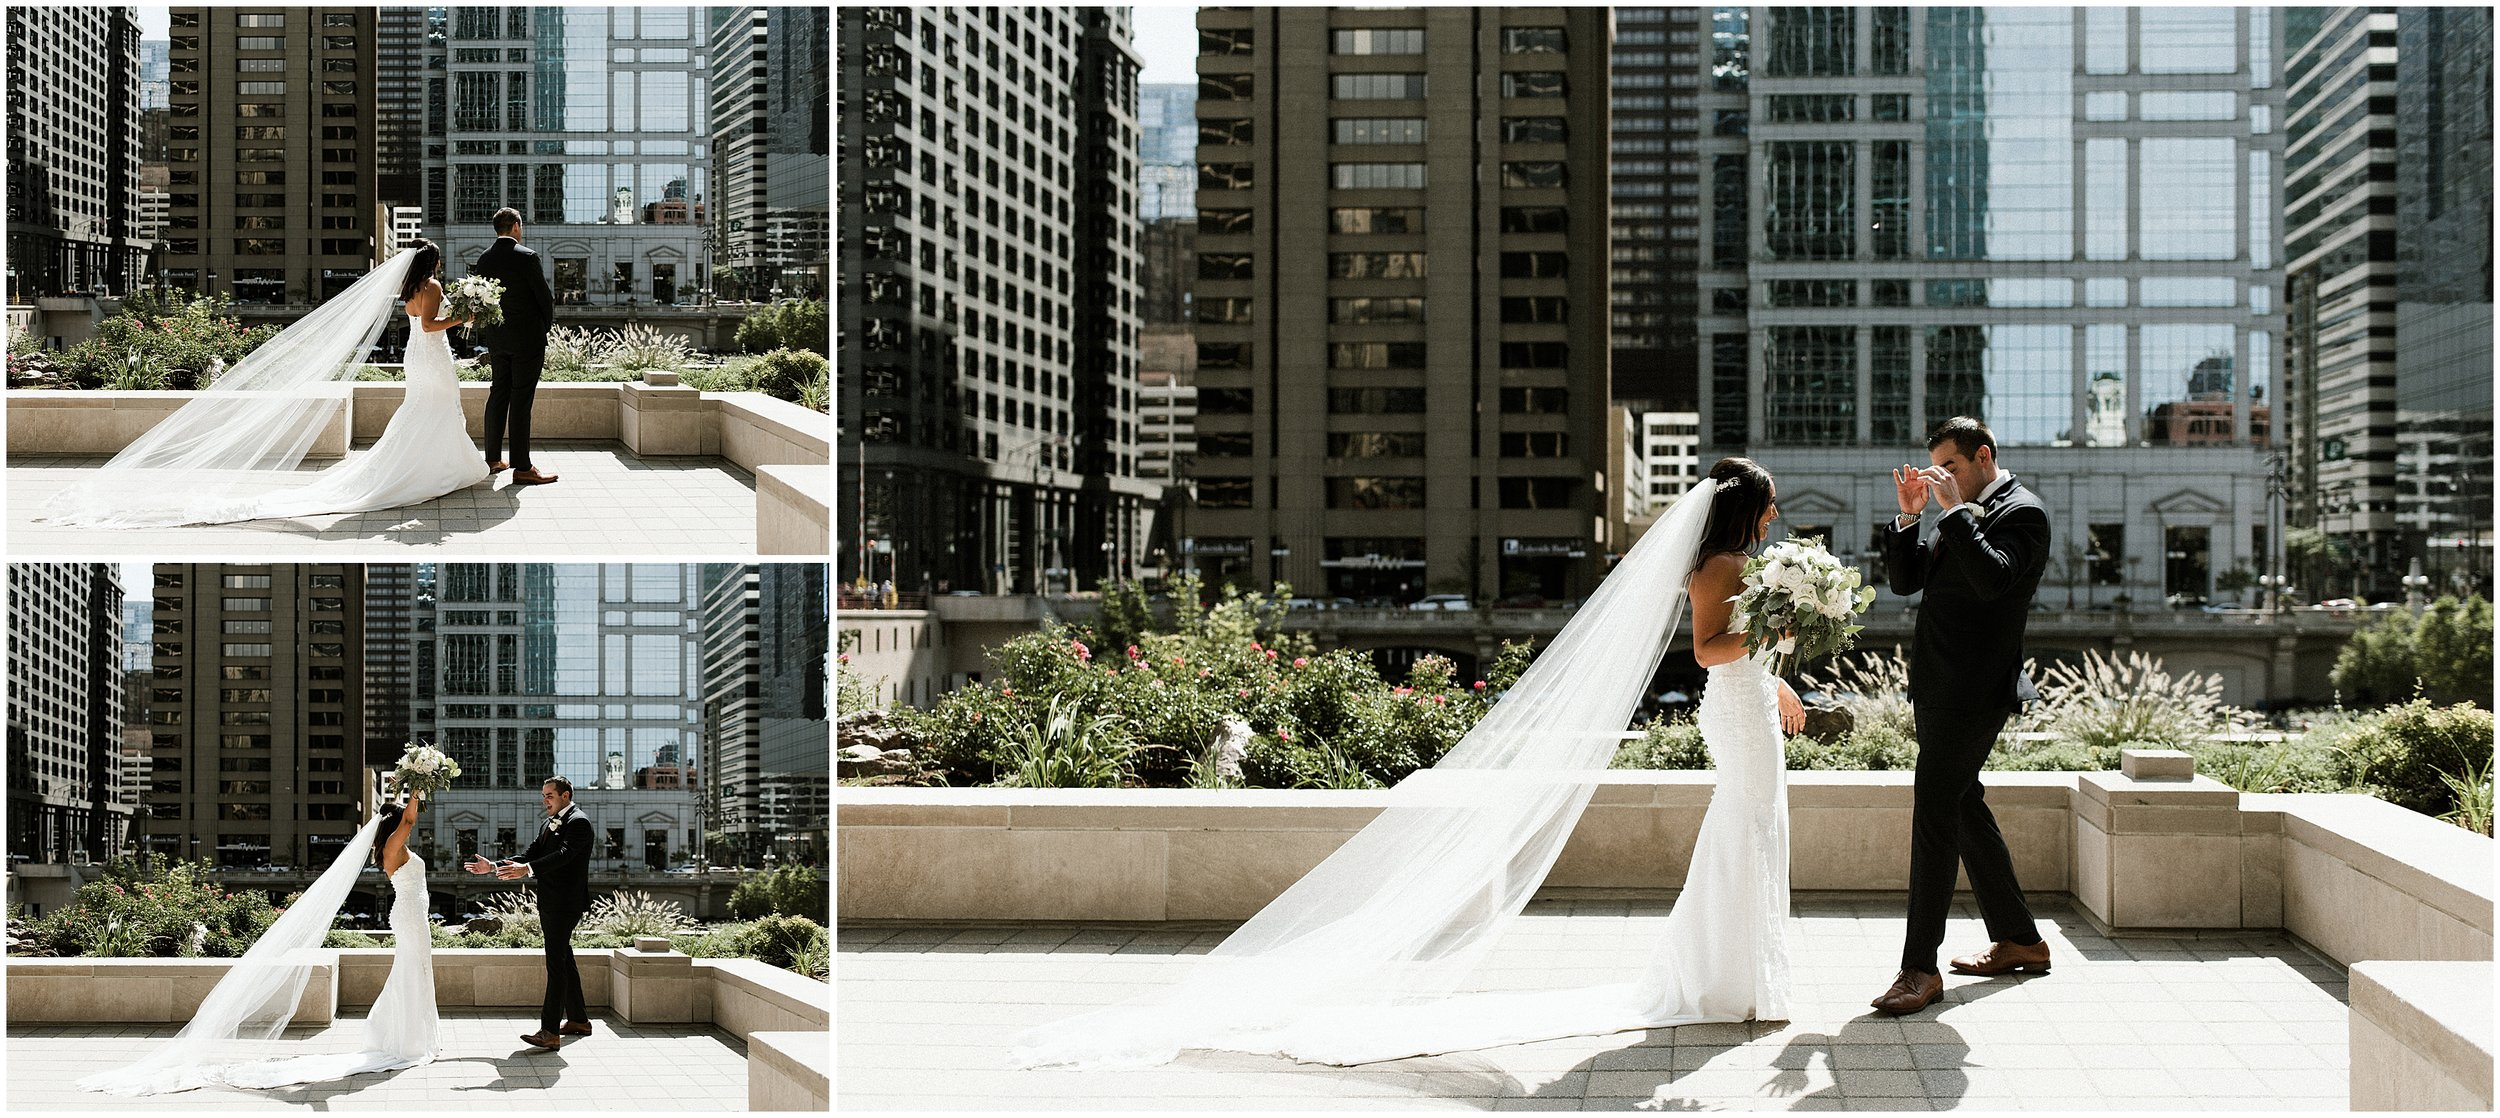 Candace Sims Photography | Mj and Kevin's Modern Romantic City Wedding | The Westin Chicago Northshore and Ignite Glass Studio | Chicago, IL | Naperville Wedding Photographer